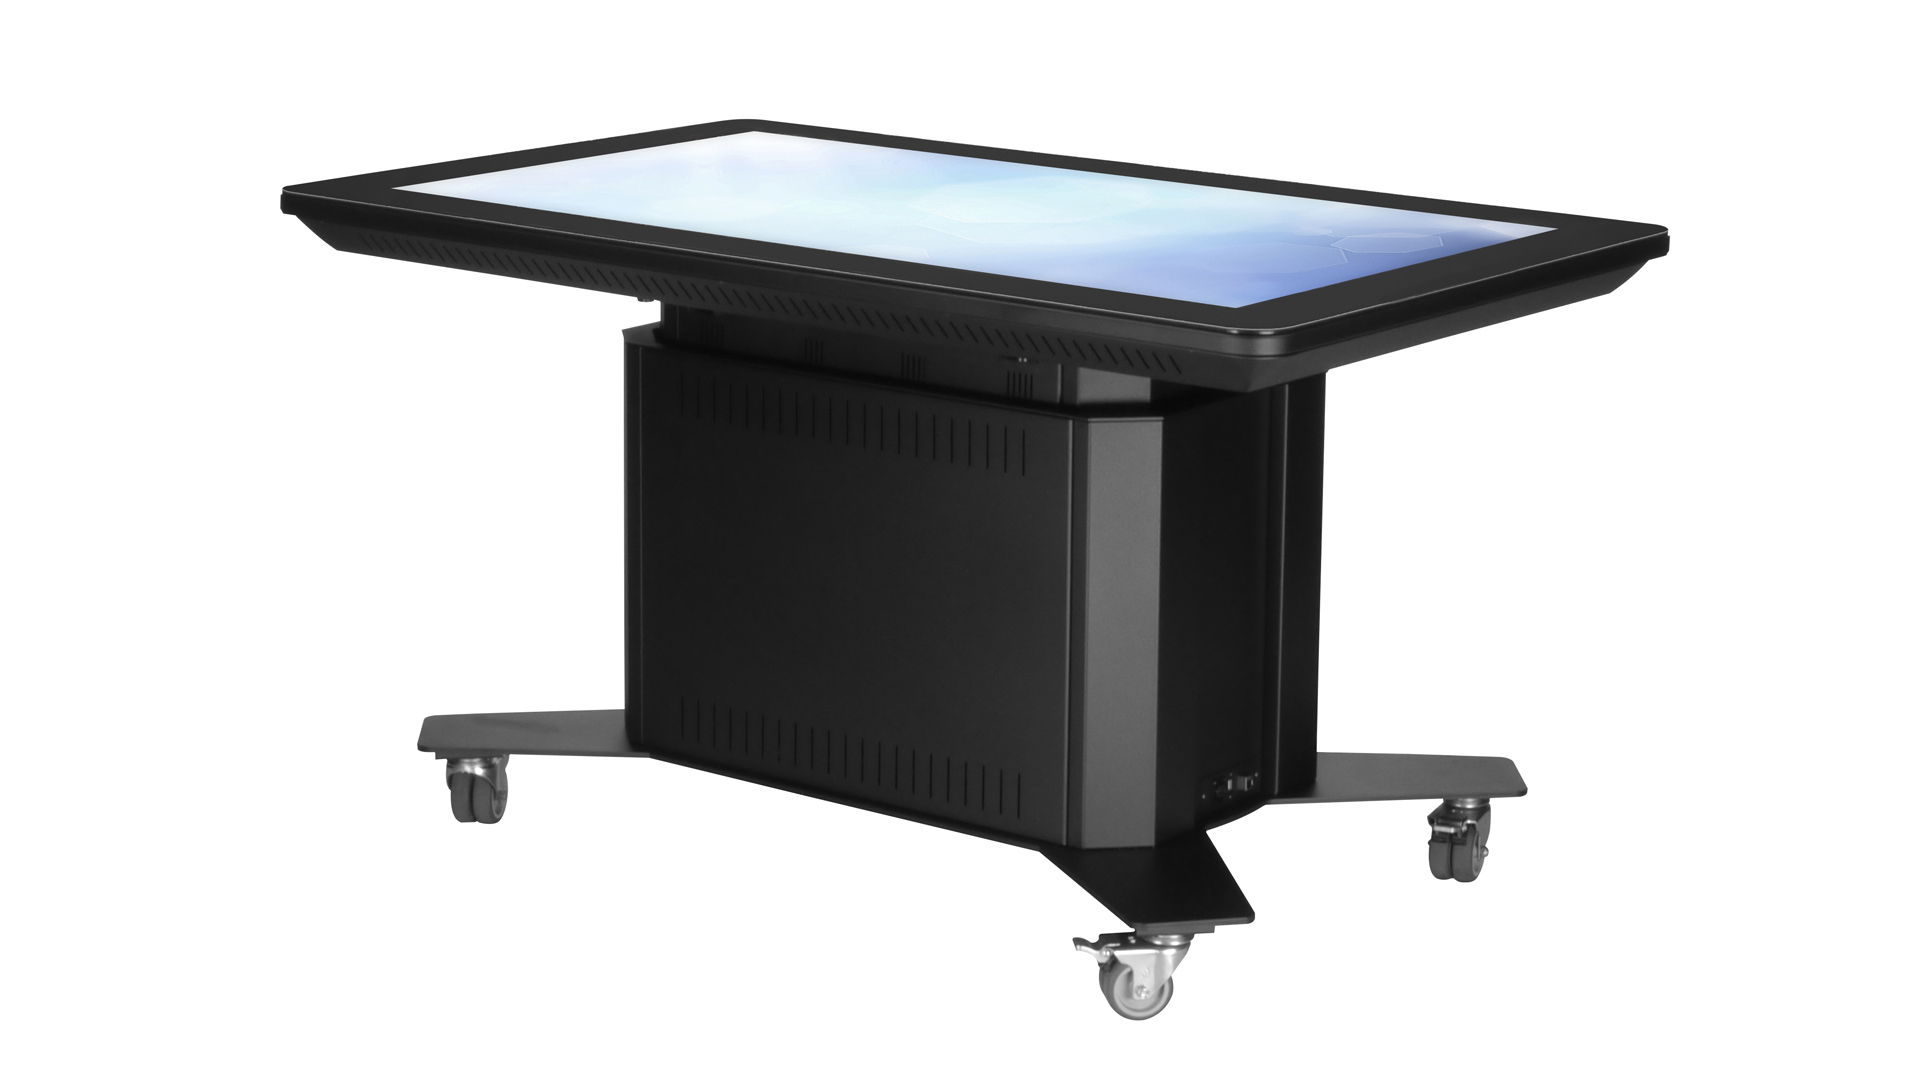 Touchez smart PCAP multitouch table